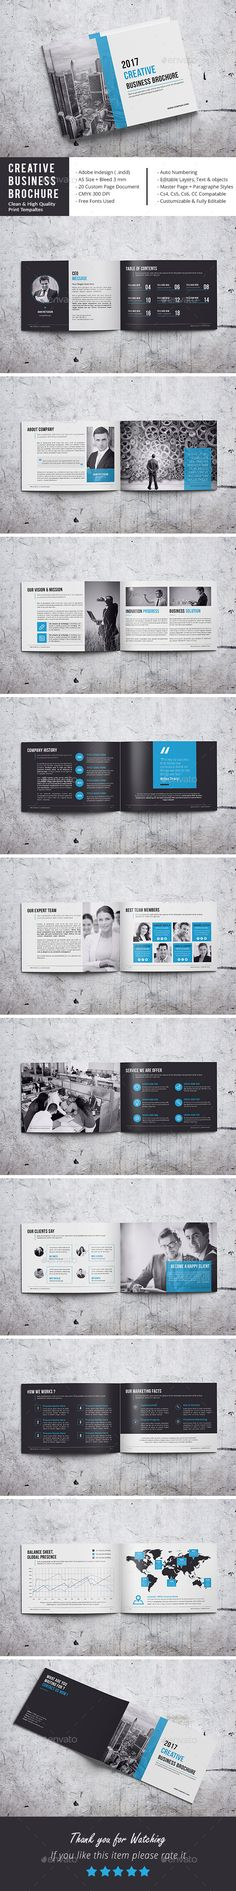 #Creative Business Brochure - Corporate #Brochures Download here: https://graphicriver.net/item/creative-business-brochure/18507664?ref=alena994